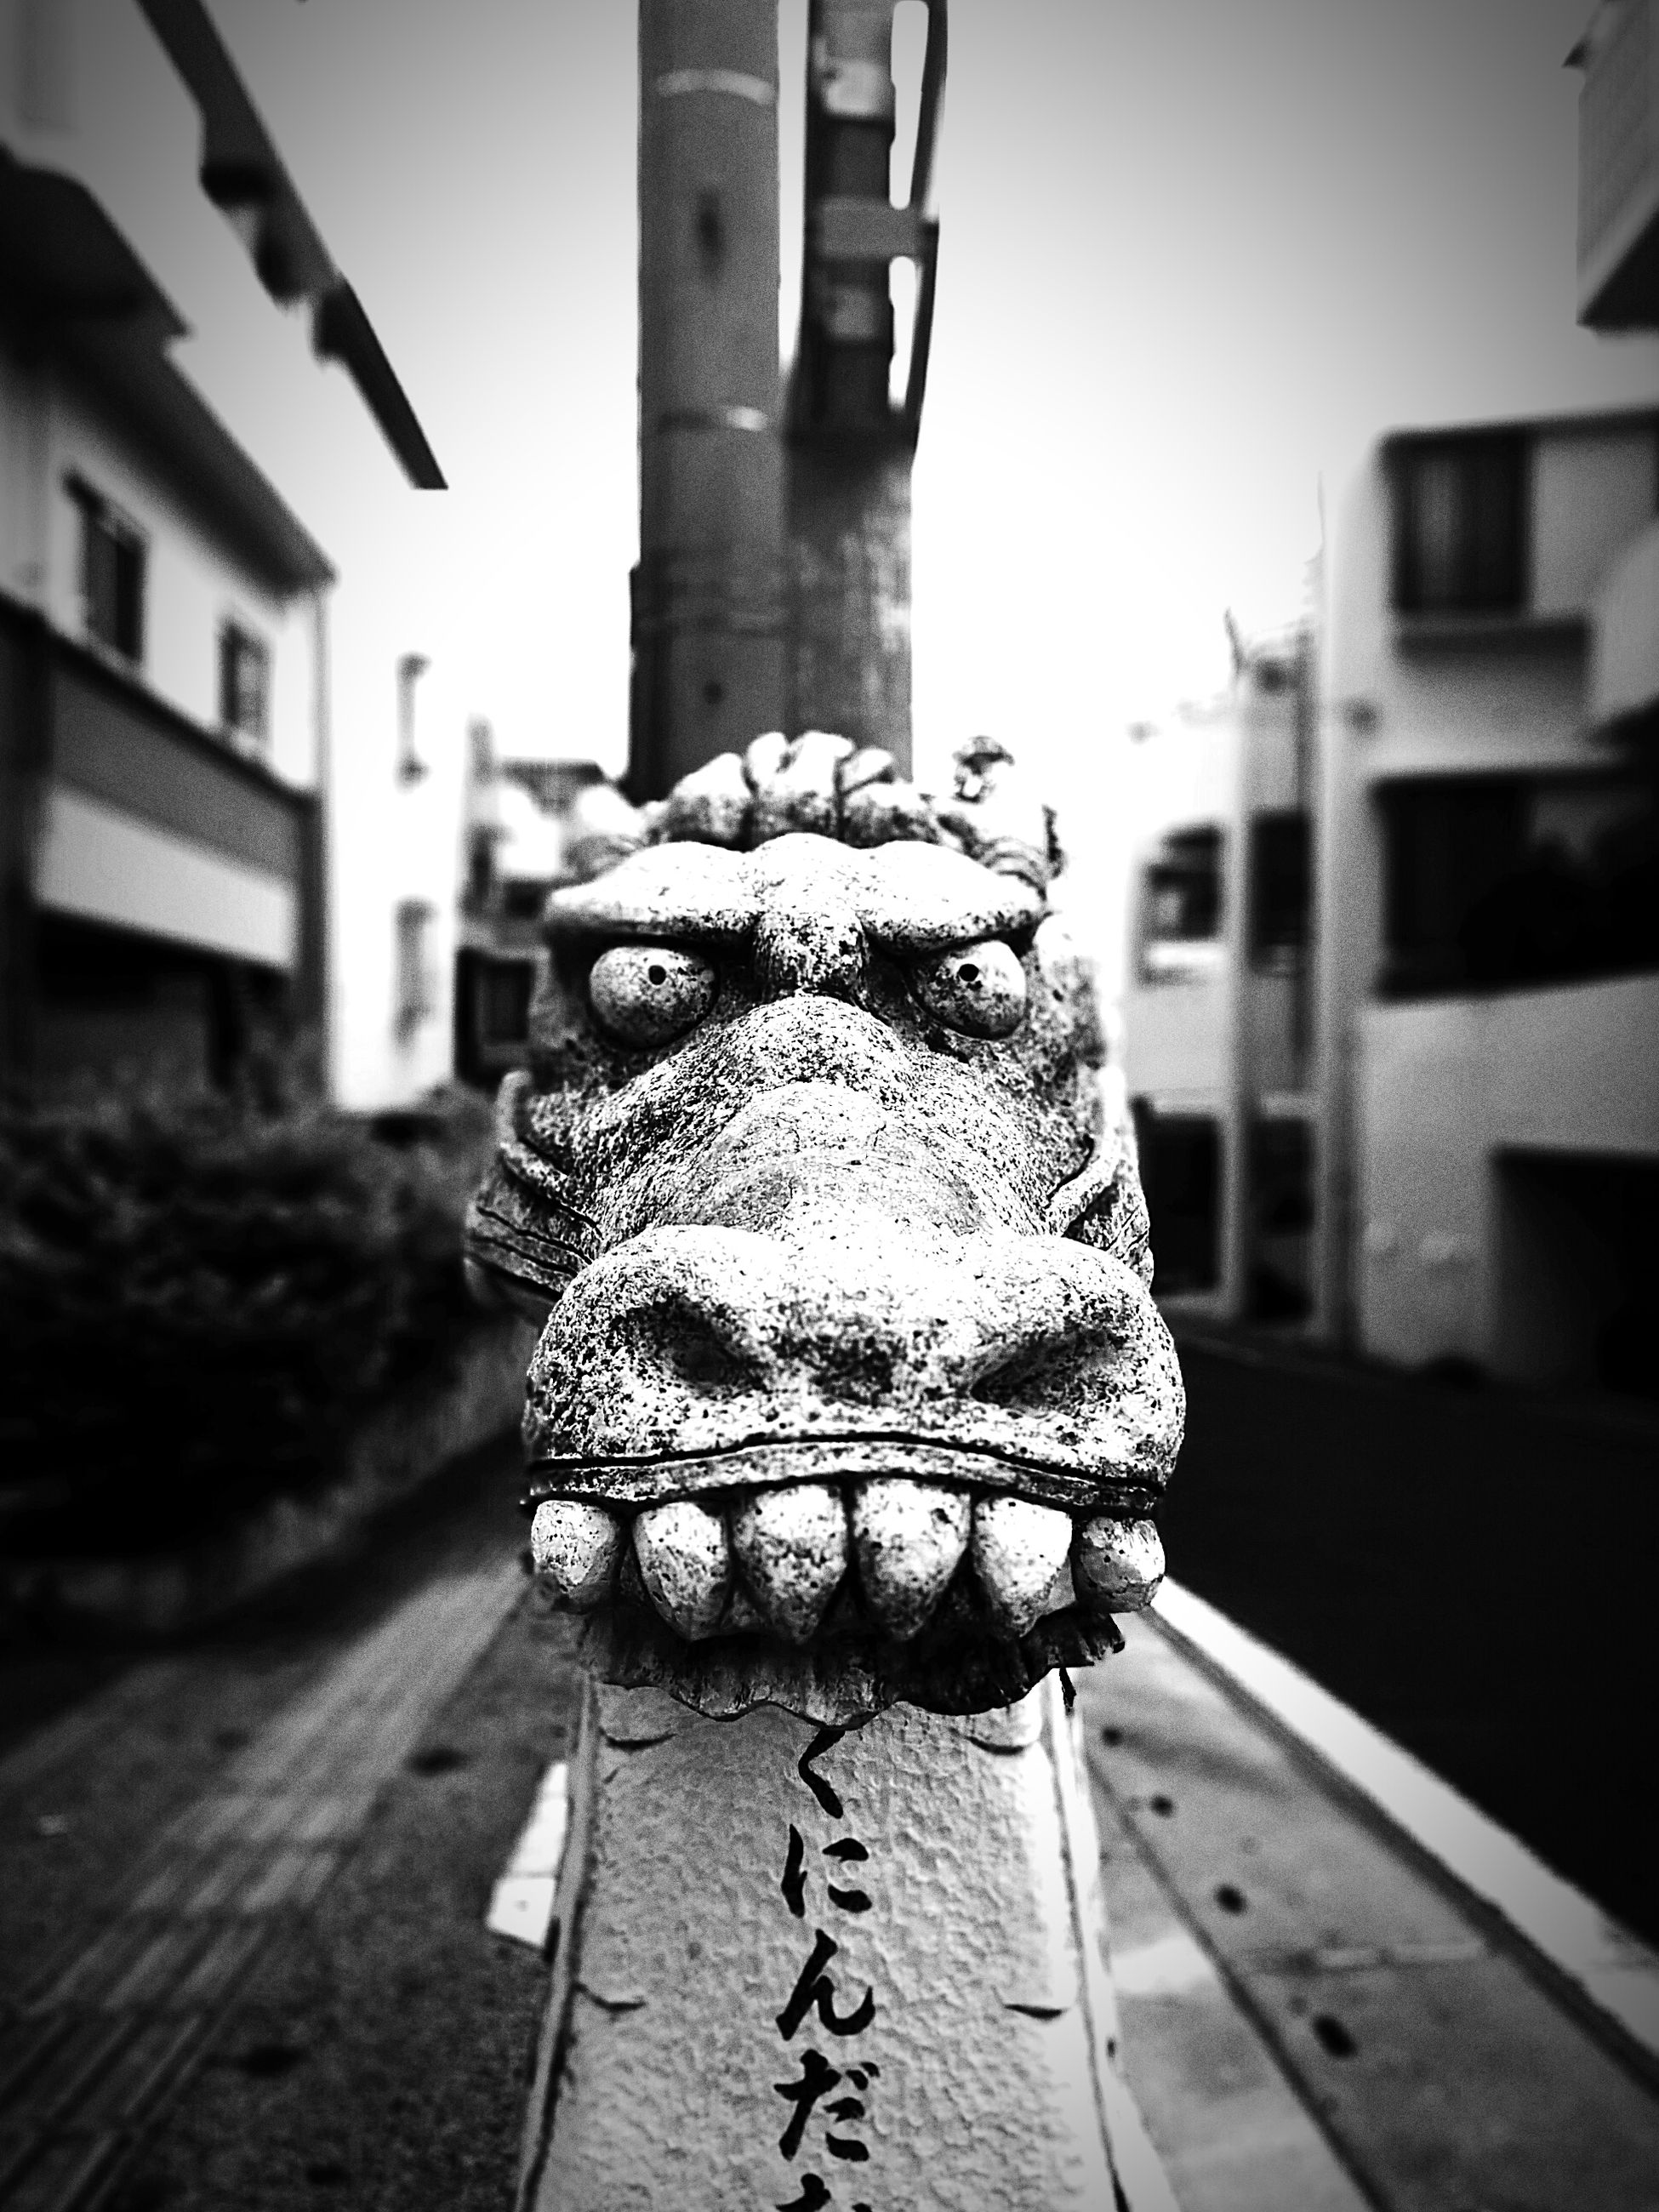 Close-up of dragon statue with text on road